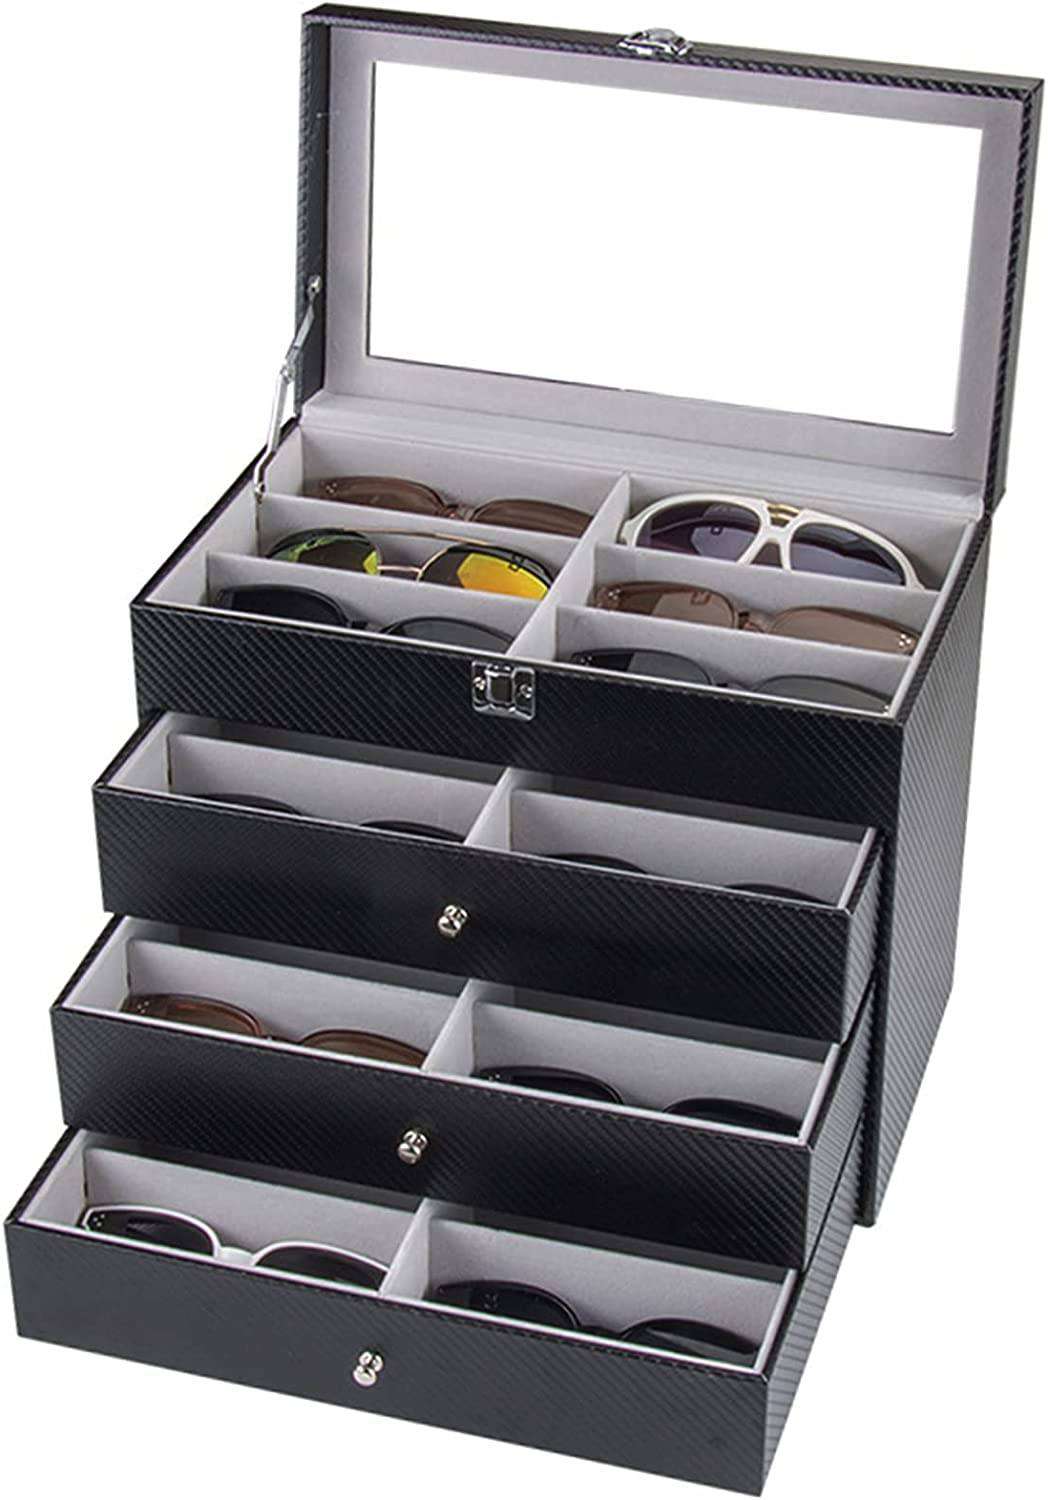 Gdrasuya10 4 Layer 24 Slots Eyeglass Sunglasses Storage Box with Removable Drawer, PU Leather Eyewear Display Case with Lockable Helpful for Storing Sunglasses and Eyeglasses to Keeping Home Clean